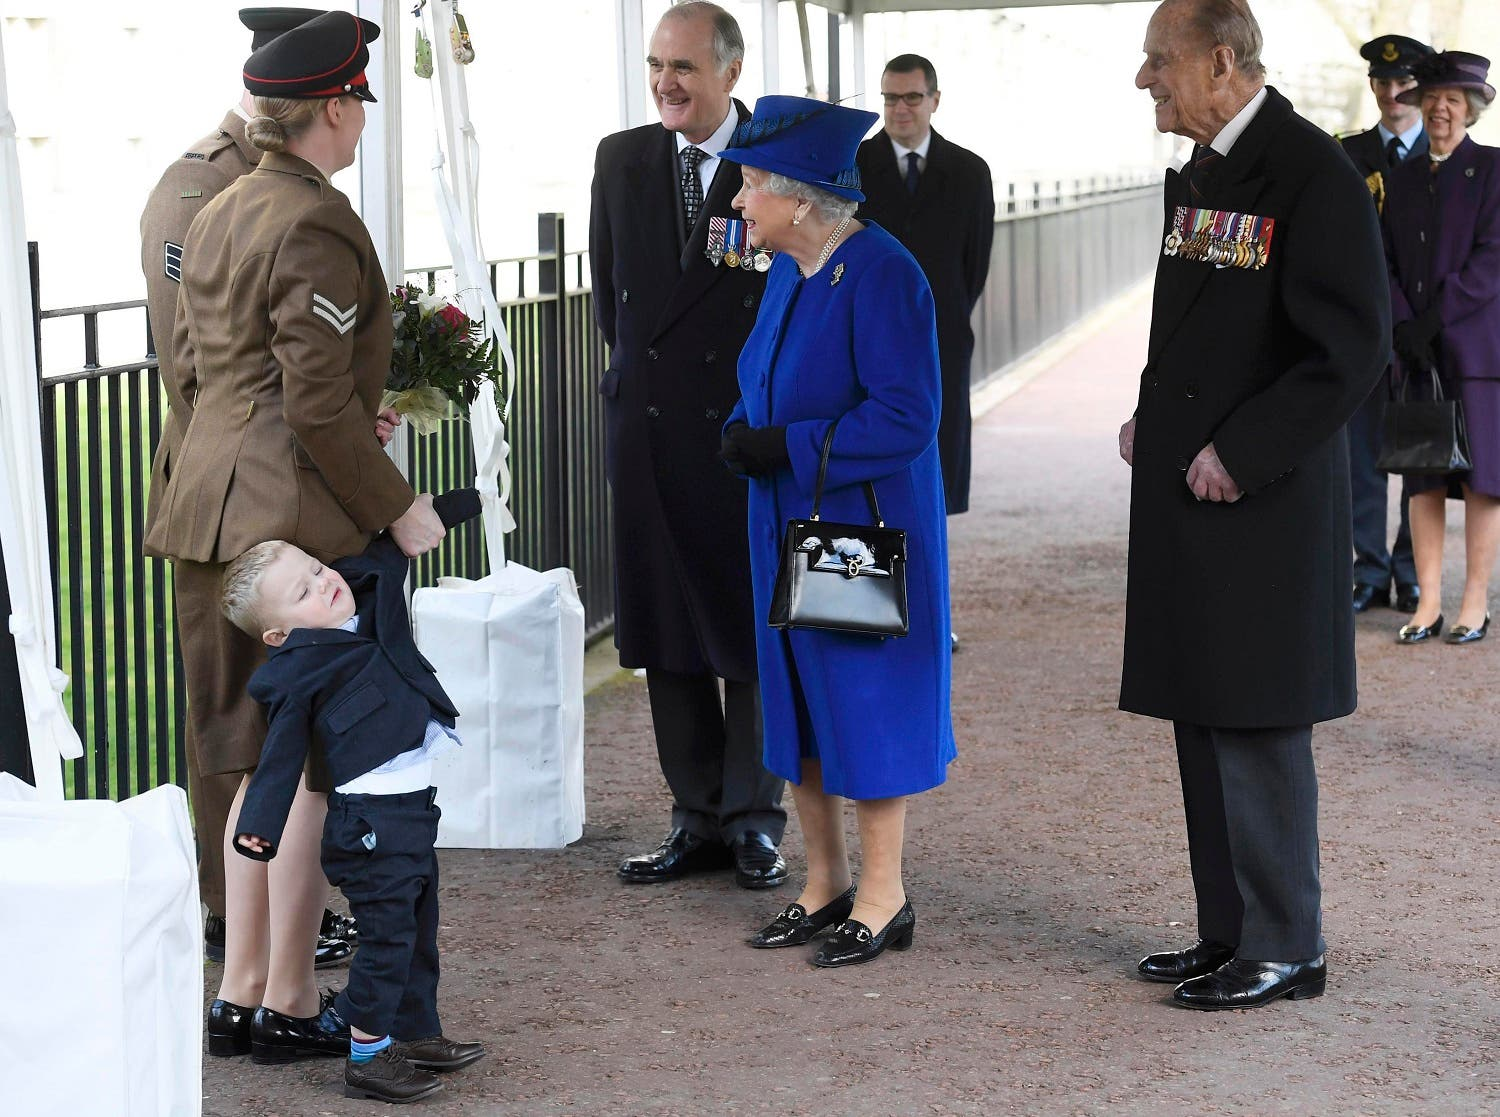 Michelle Lun, left, holds on to her son Alfie, 2-years-old as they meet Britain's Queen Elizabeth II at the unveiling during the the unveiling of a national memorial honouring the Armed Forces and civilians who served their country during the Gulf War and conflicts in Iraq and Afghanistan in London Thursday March 9, 2017. (AP)